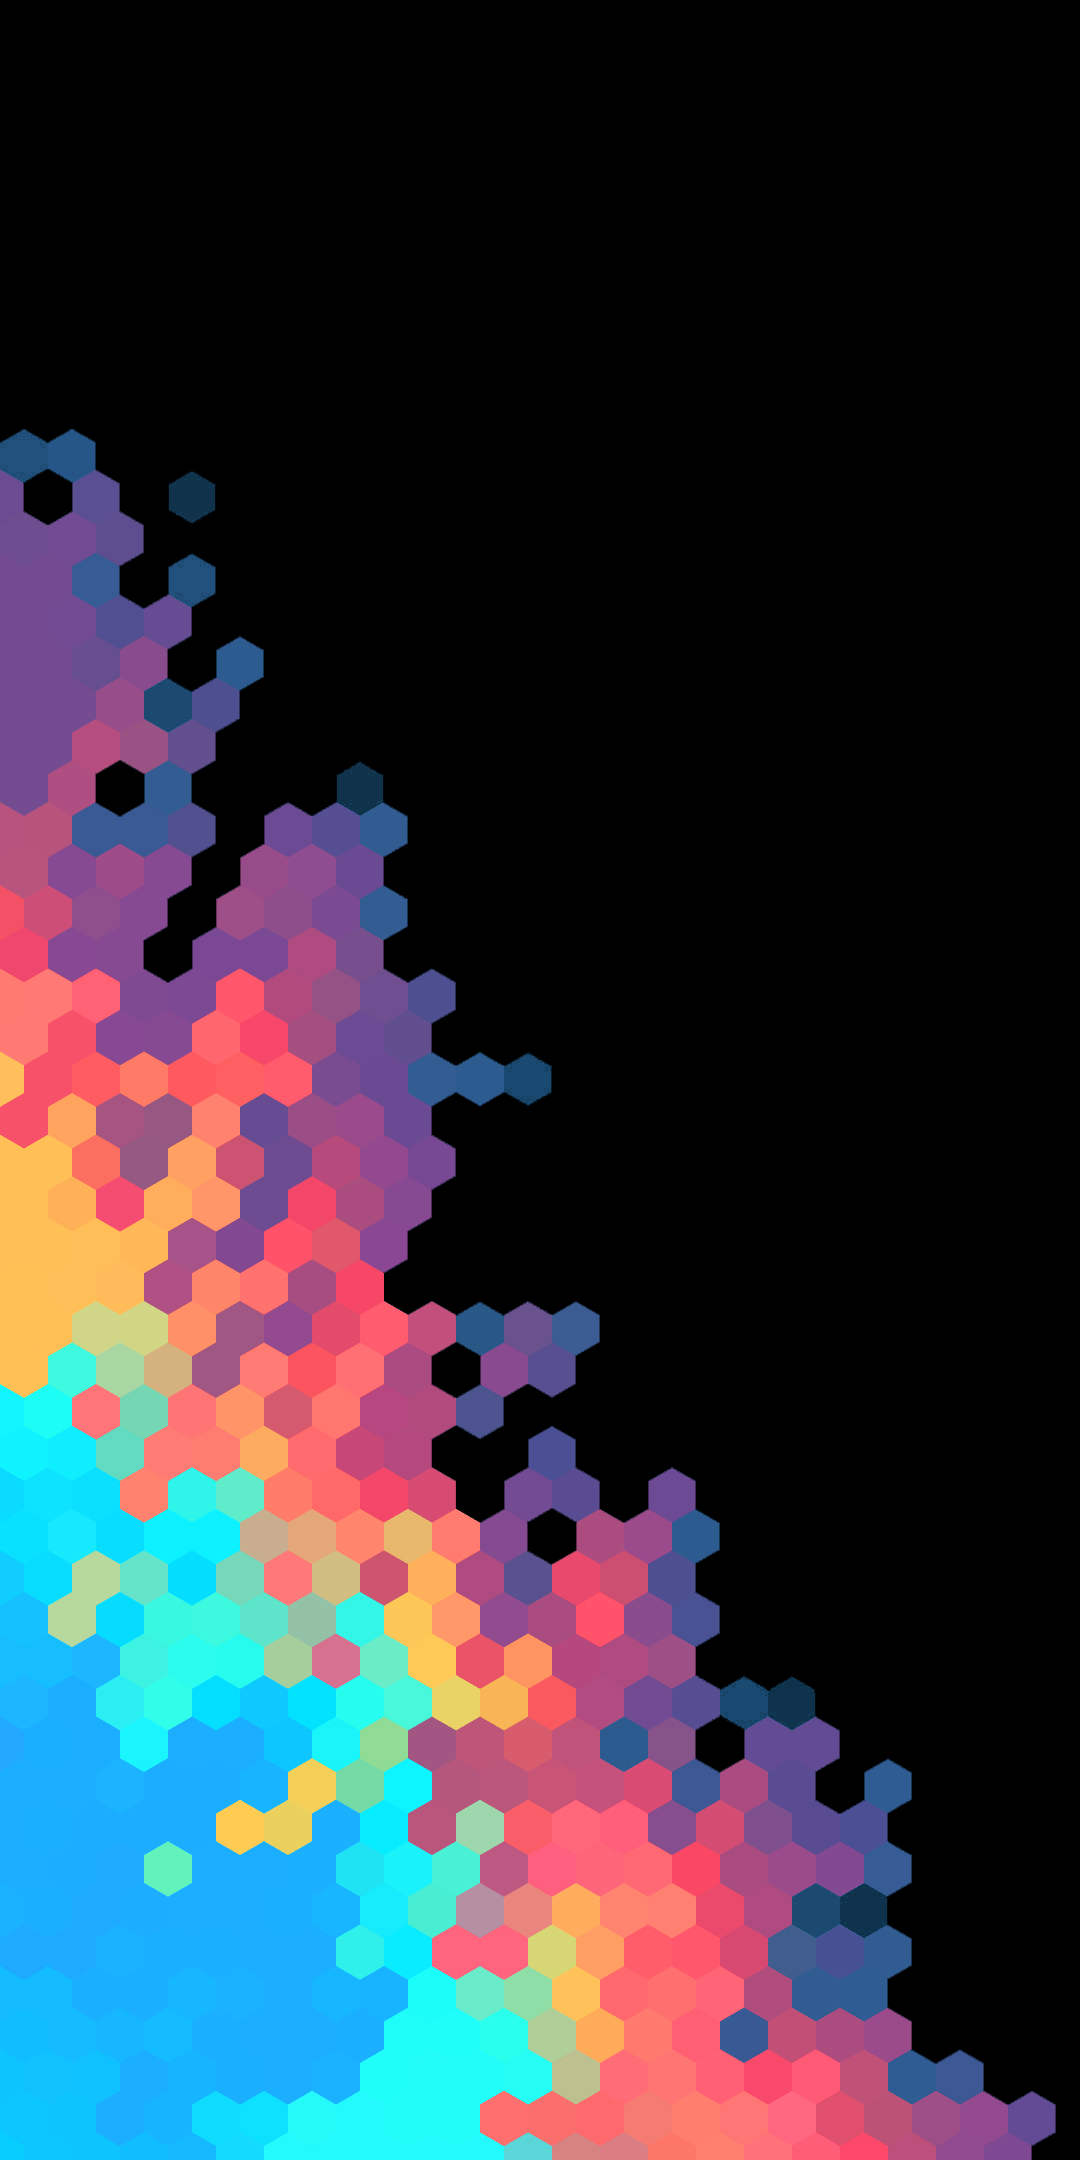 Hex Fade 1080x2160 I Imgur Com Submitted By Zewone To R Amoledbackgrounds 0 Comments Original Simple Phone Wallpapers Graffiti Wallpaper Phone Wallpaper